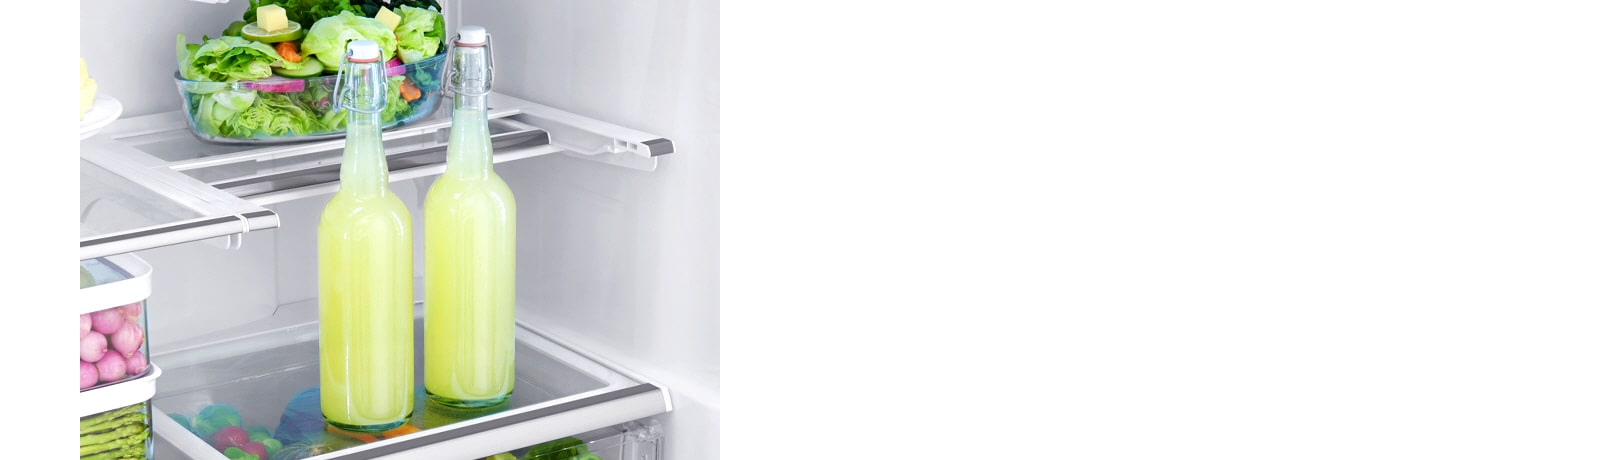 Retractable Shelf to store Tall items